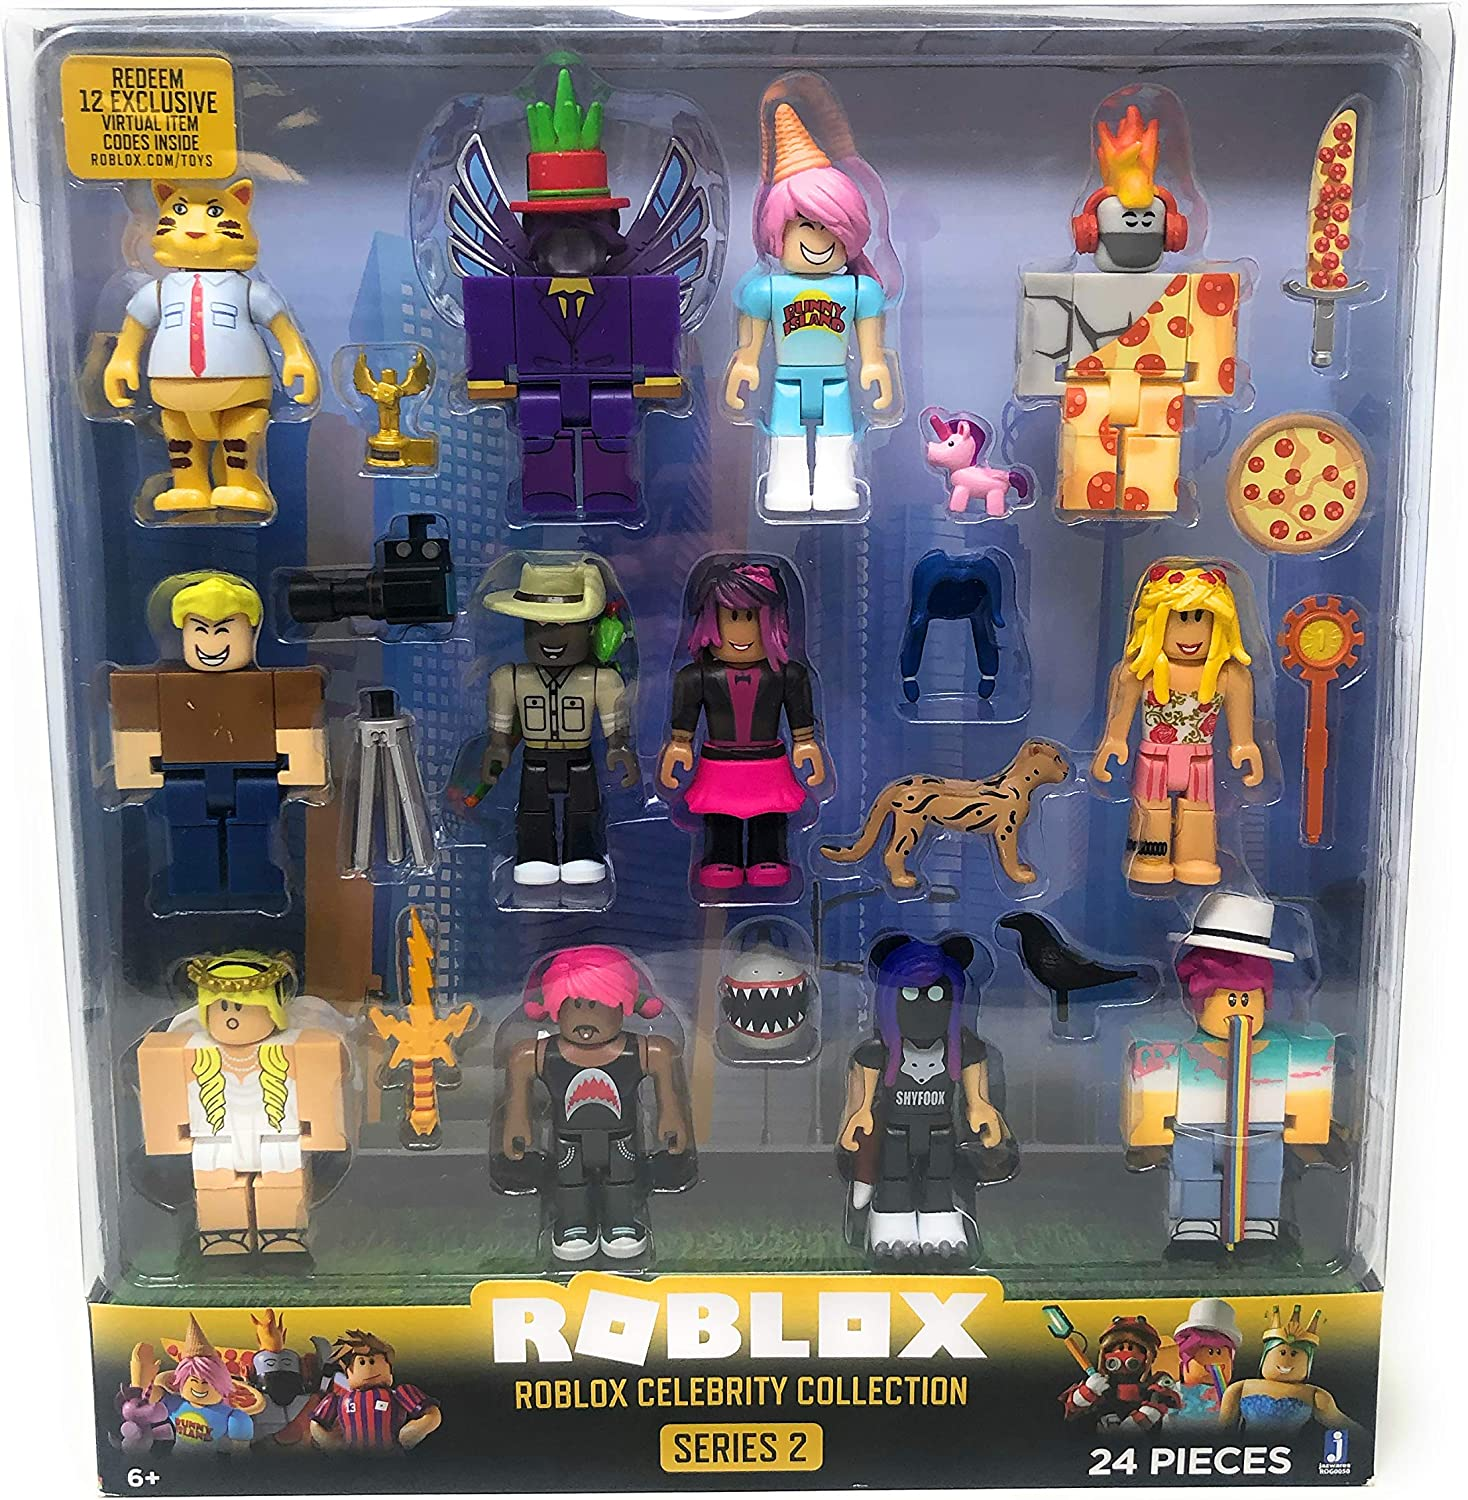 Action Figures Roblox Celebrity Gold Series 2 Mystery Figures Blue Amazon Com Roblox Series 2 Roblox Celebrity Collection 24 Piece Set Toys Games